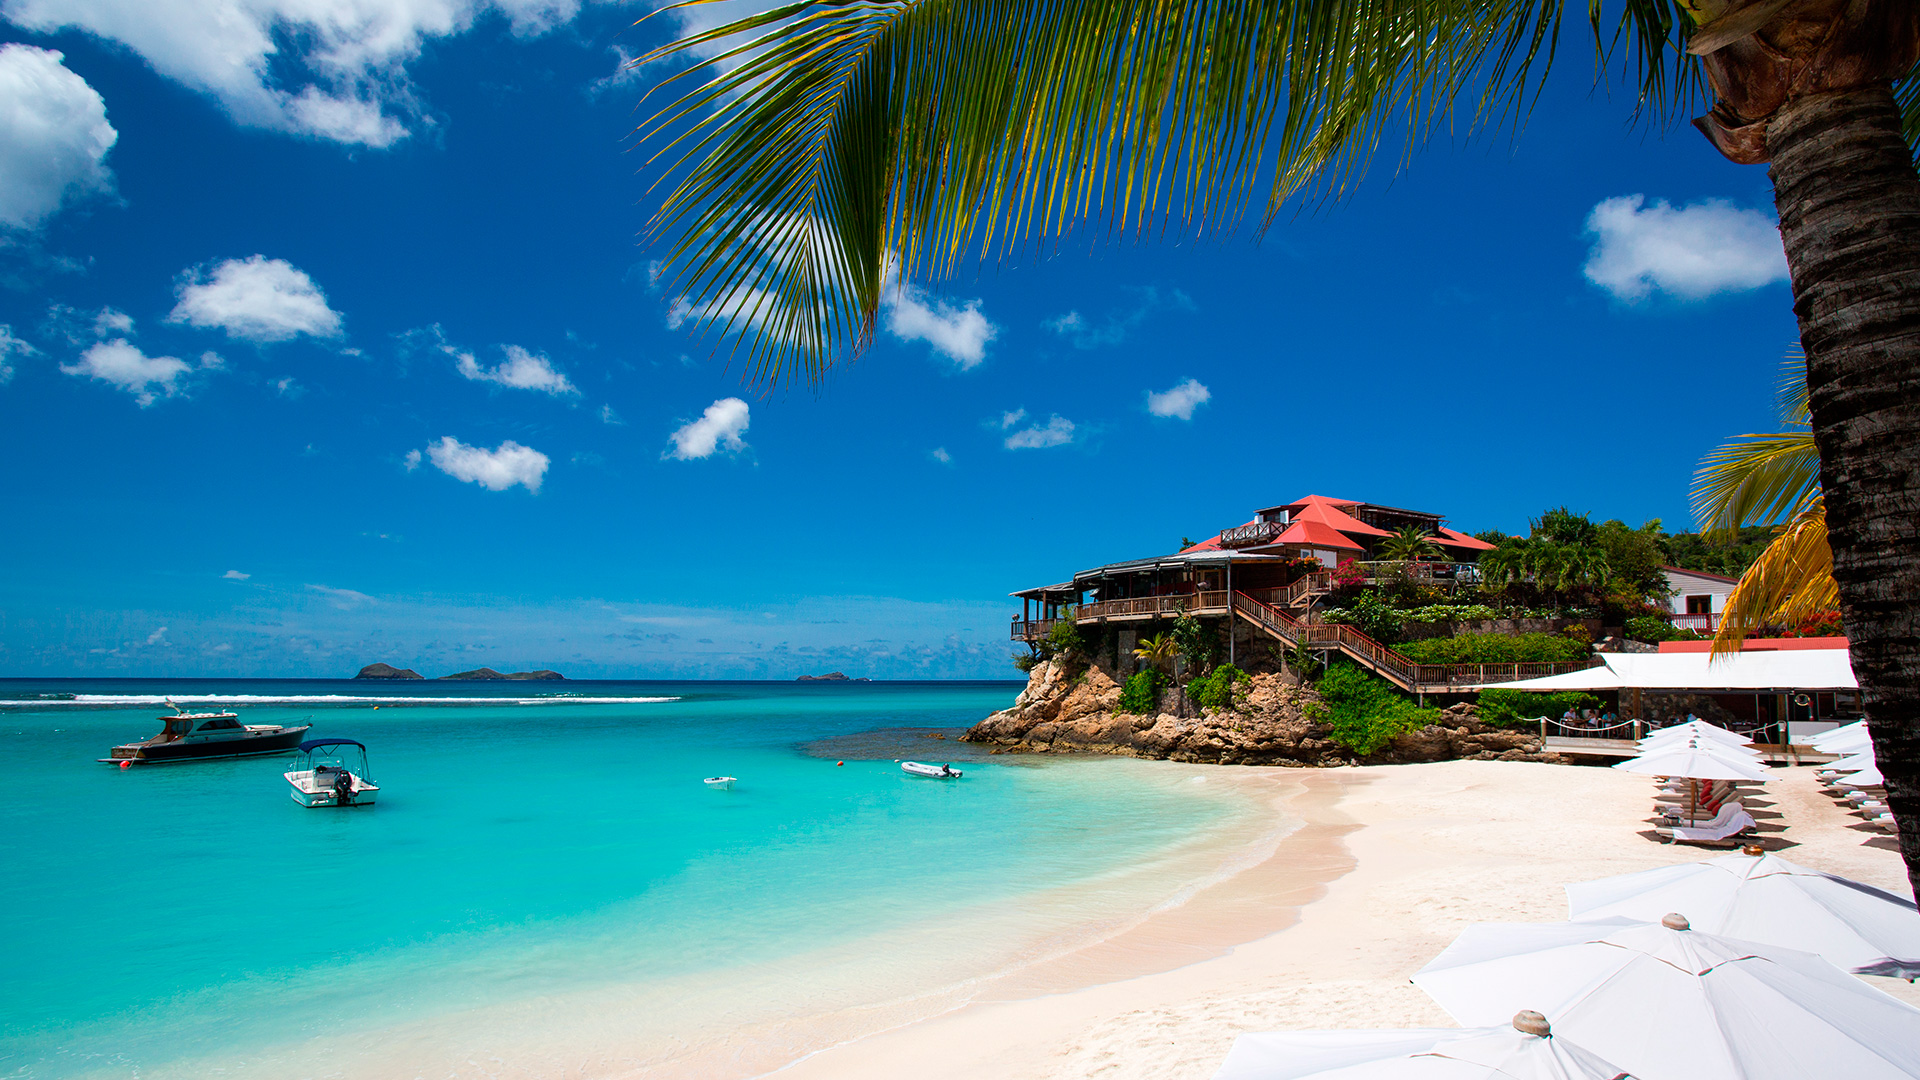 Eden rock hotel st barts 2018 world 39 s best hotels for St barts in the caribbean